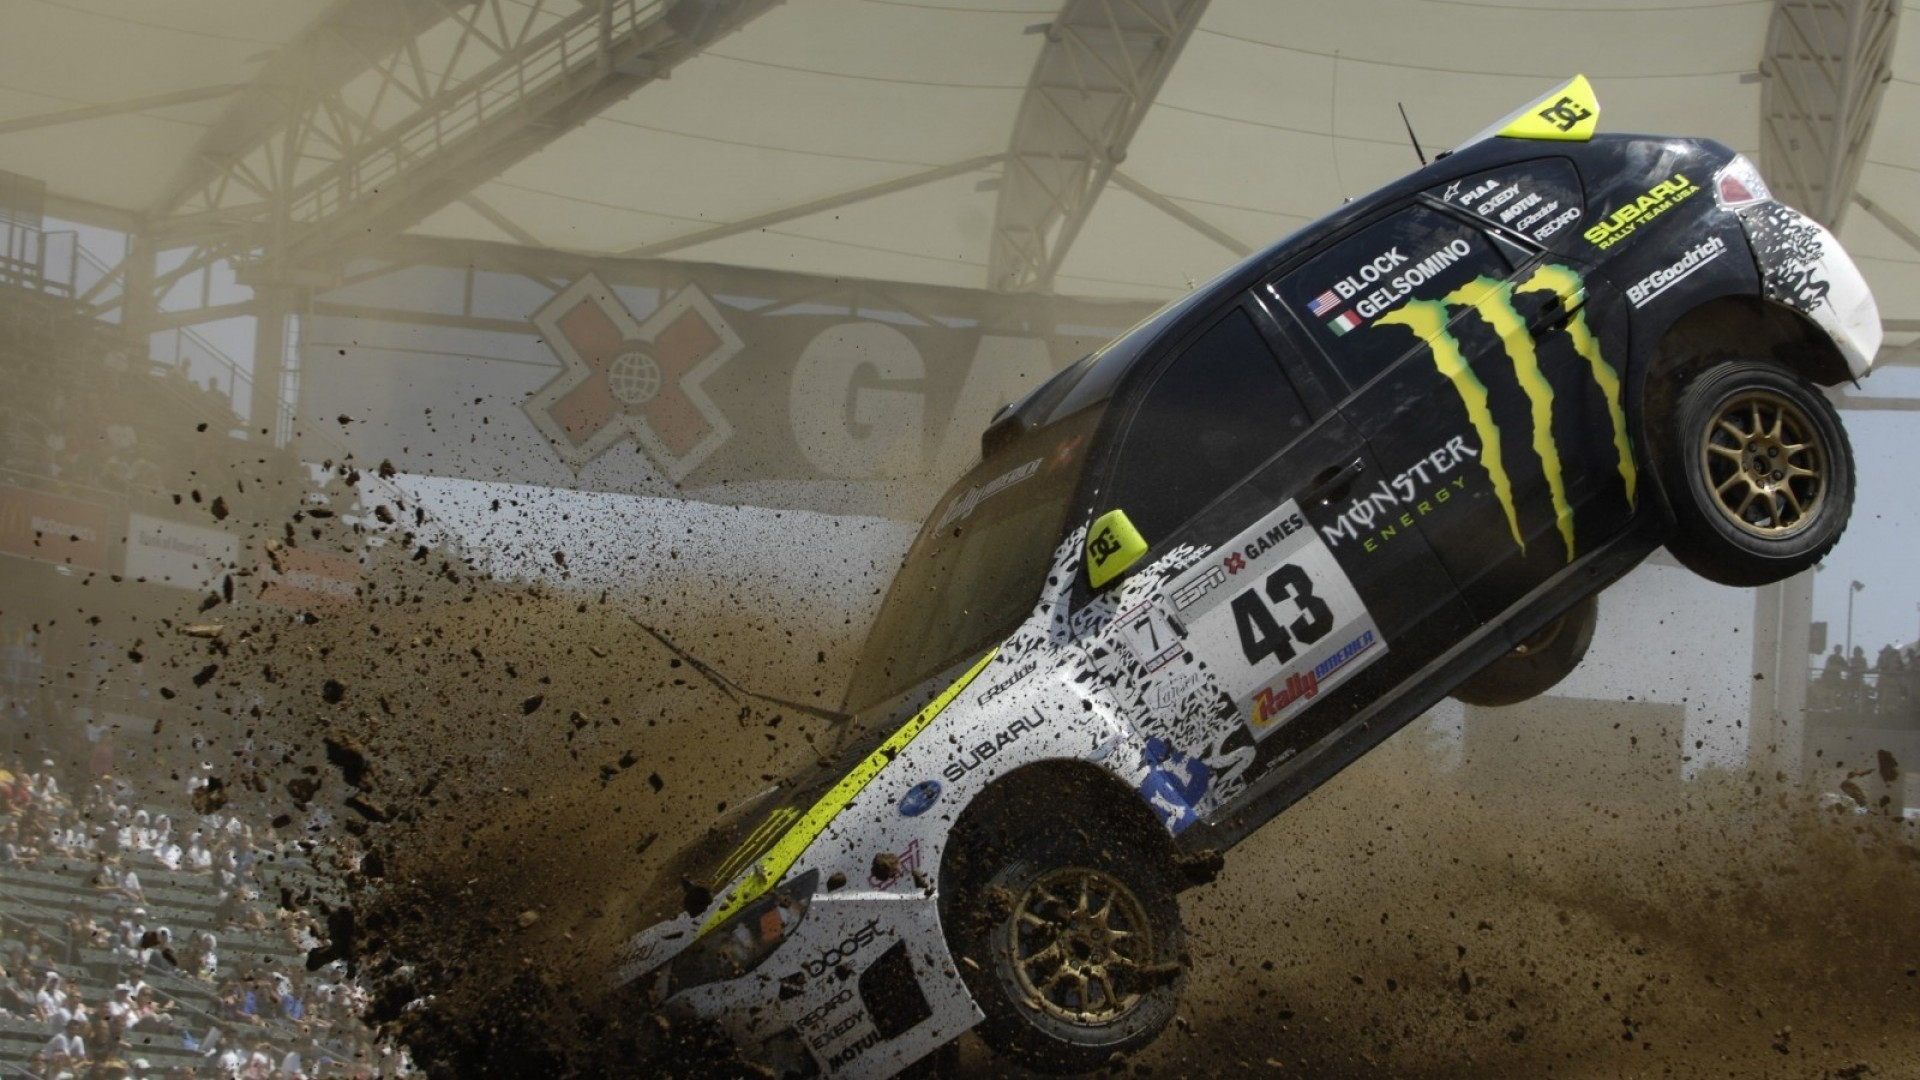 Cars Crash Wallpaper 1920x1080 Cars Crash Ken Block Subaru 1920x1080